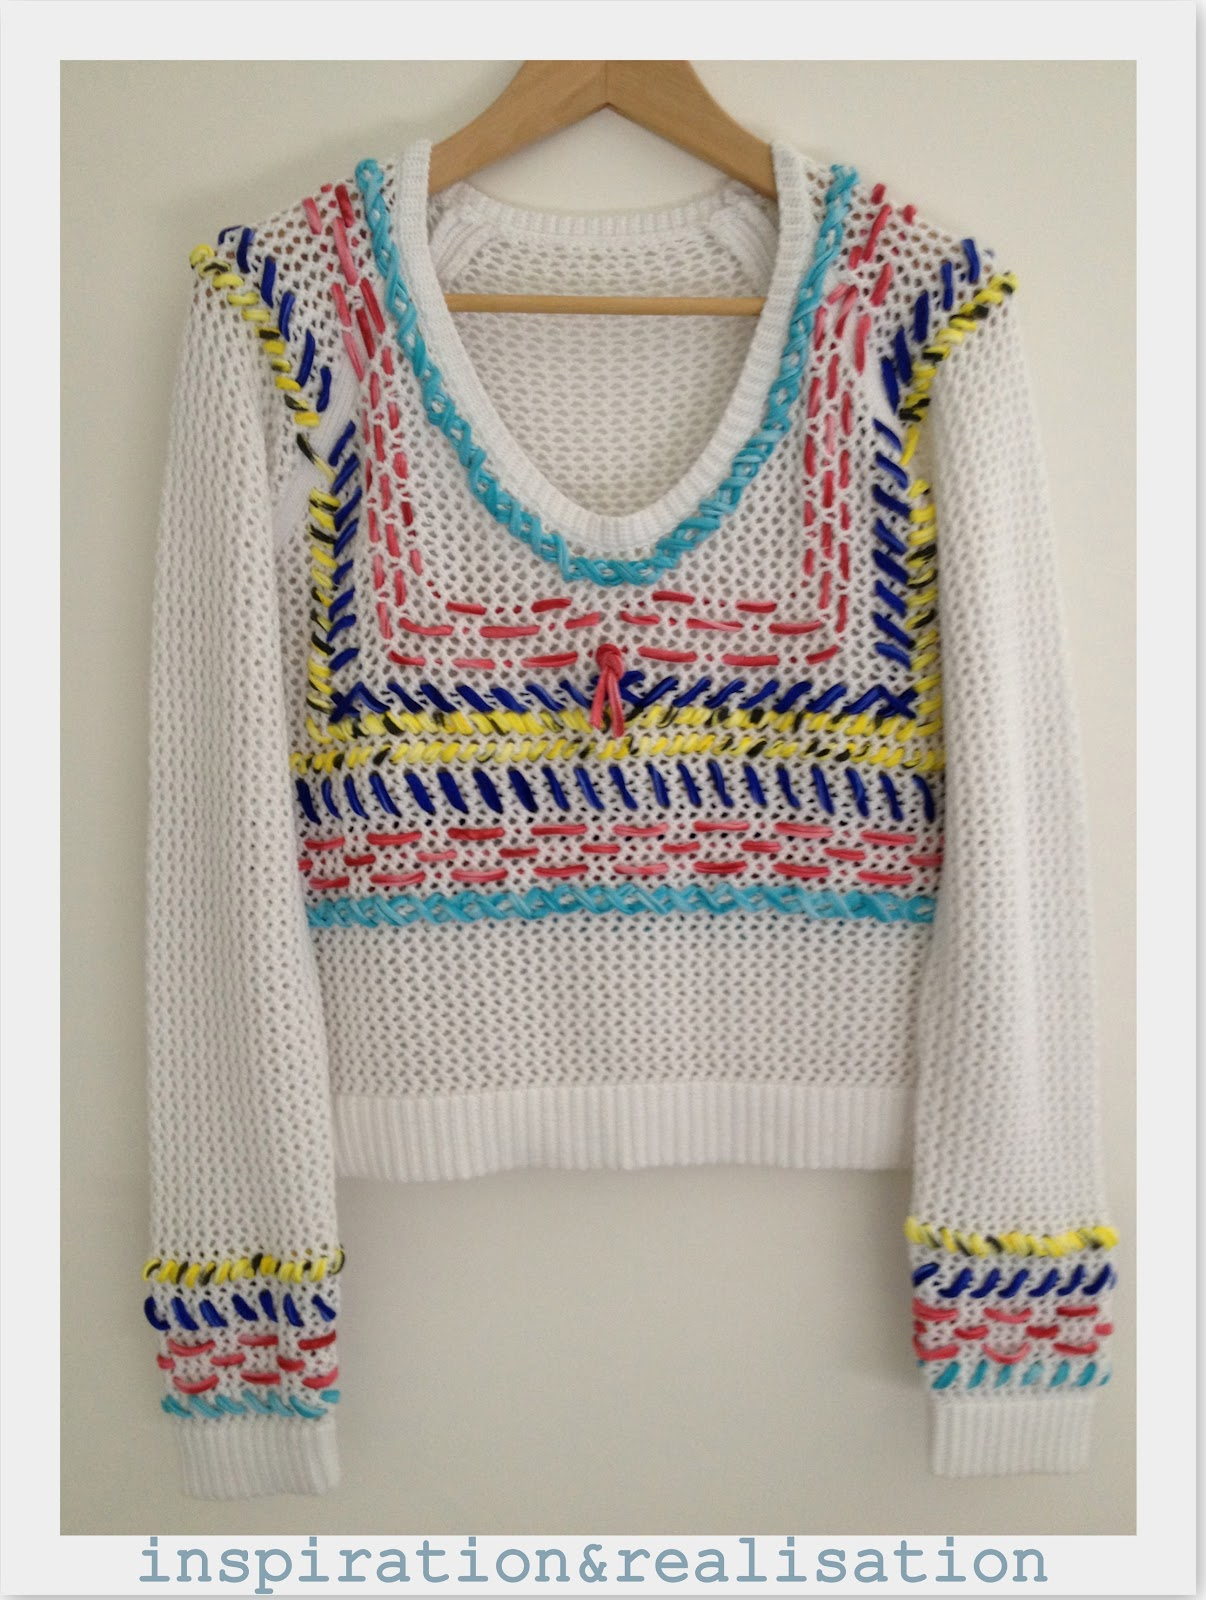 Inspiration and realisation diy fashion blog diy stitched open and diy the perfect summer open knit bankloansurffo Choice Image